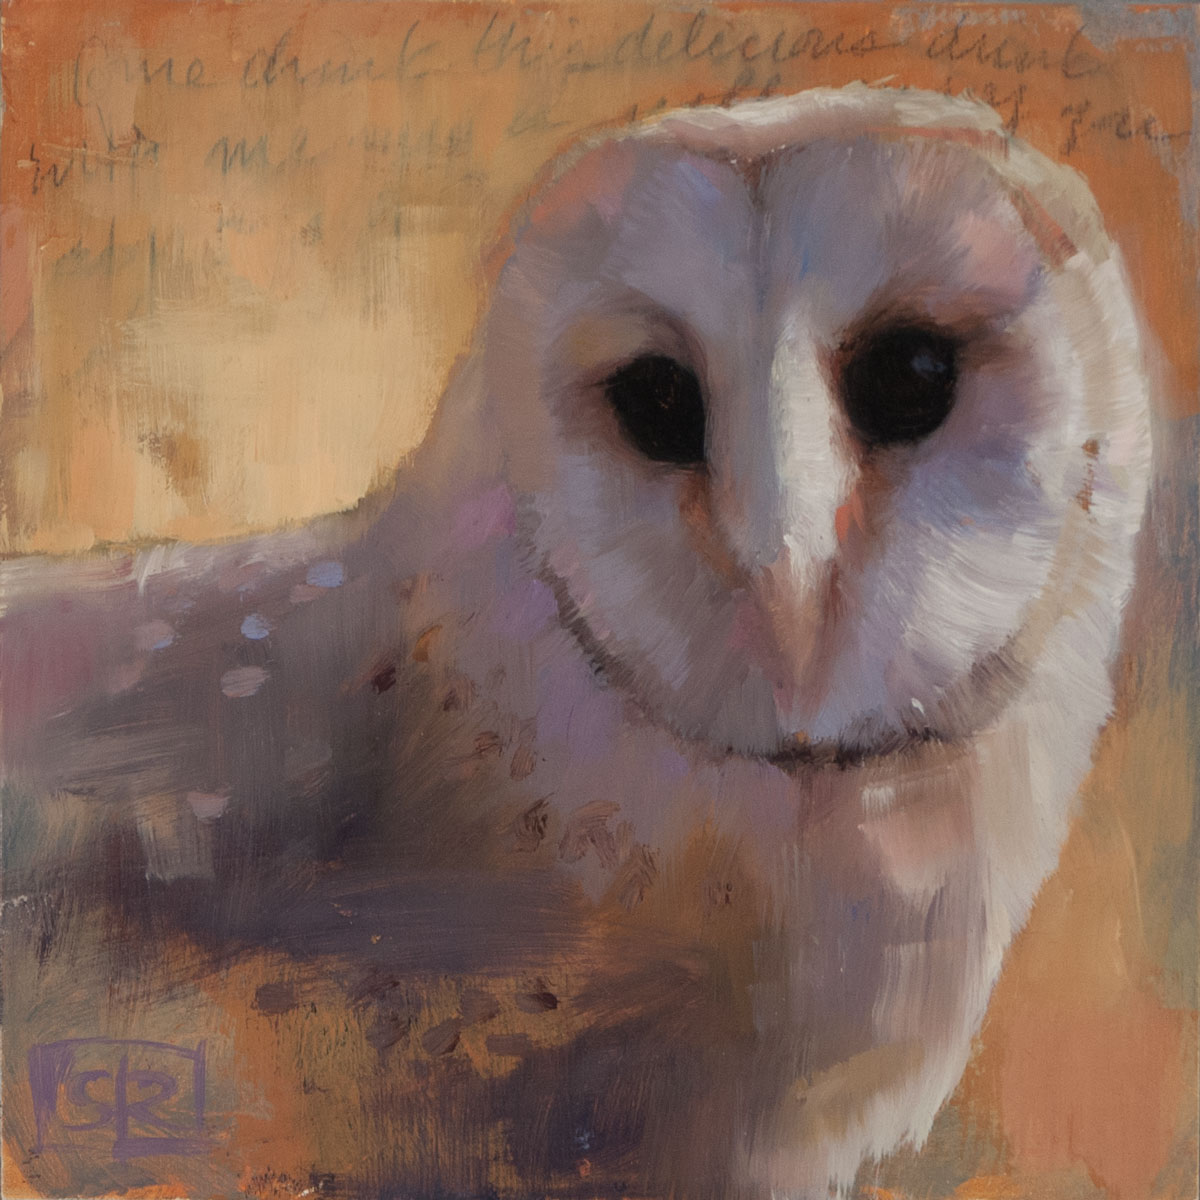 Small Canvases Too Cold And Damp For Nuit Blancheand Barn Owls